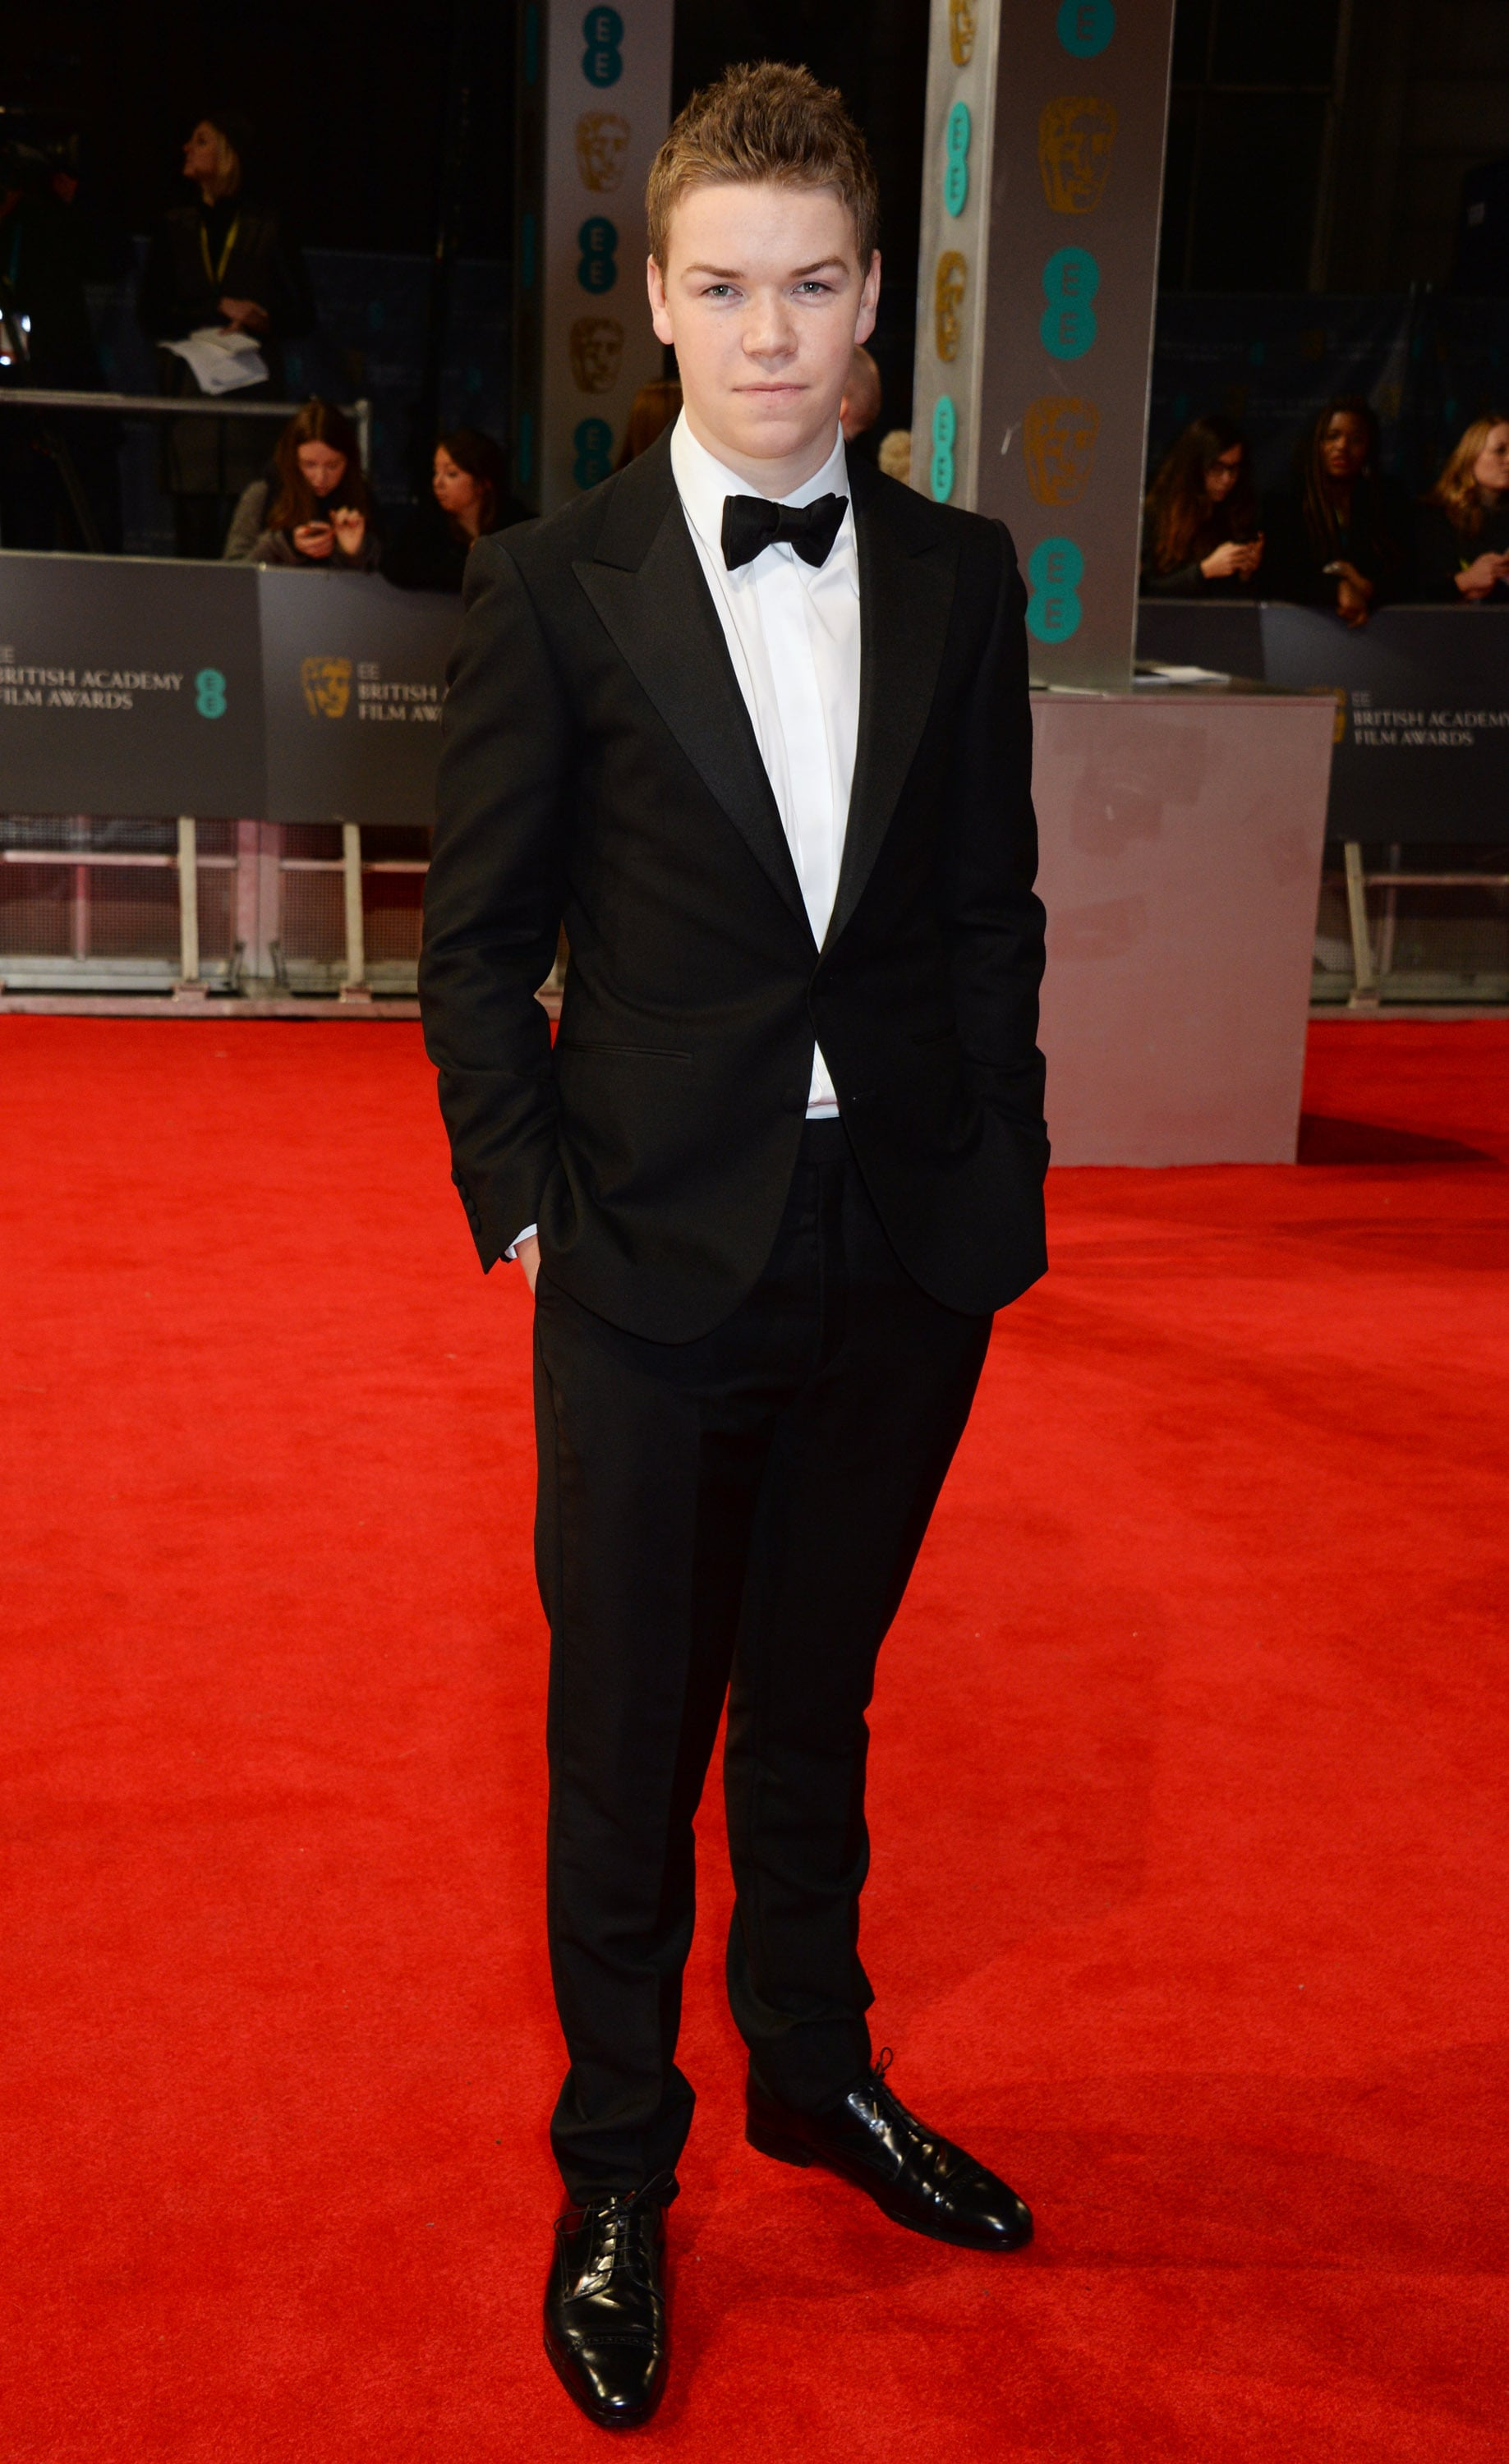 Will Poulter at the 2014 BAFTA Awards.